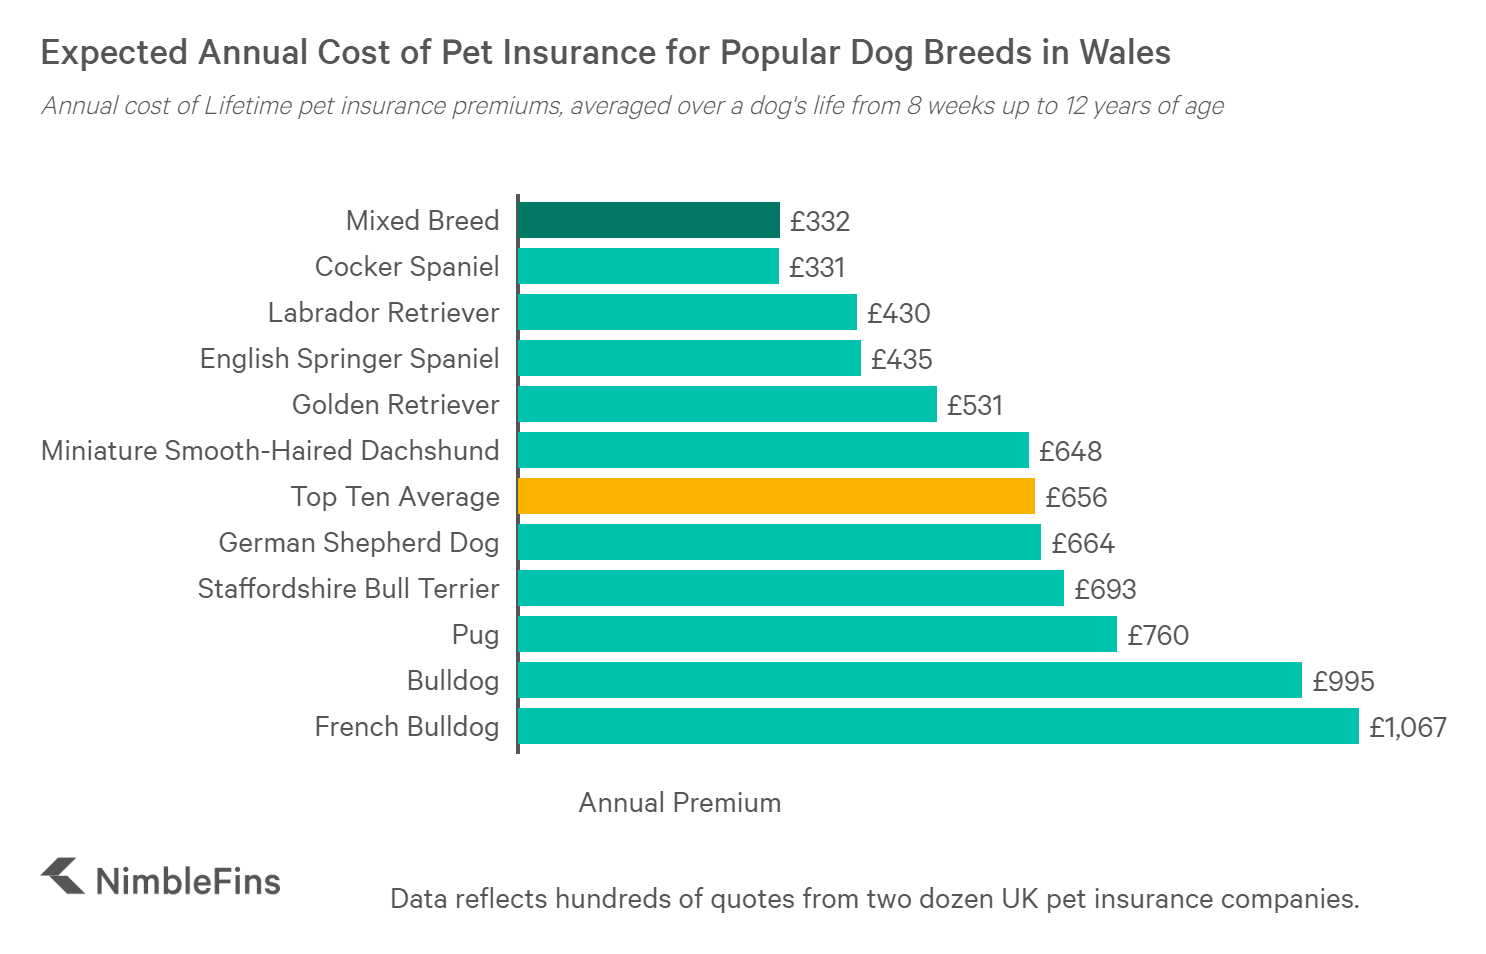 chart showing the annual cost to of Lifetime insurance for popular dogs in Wales